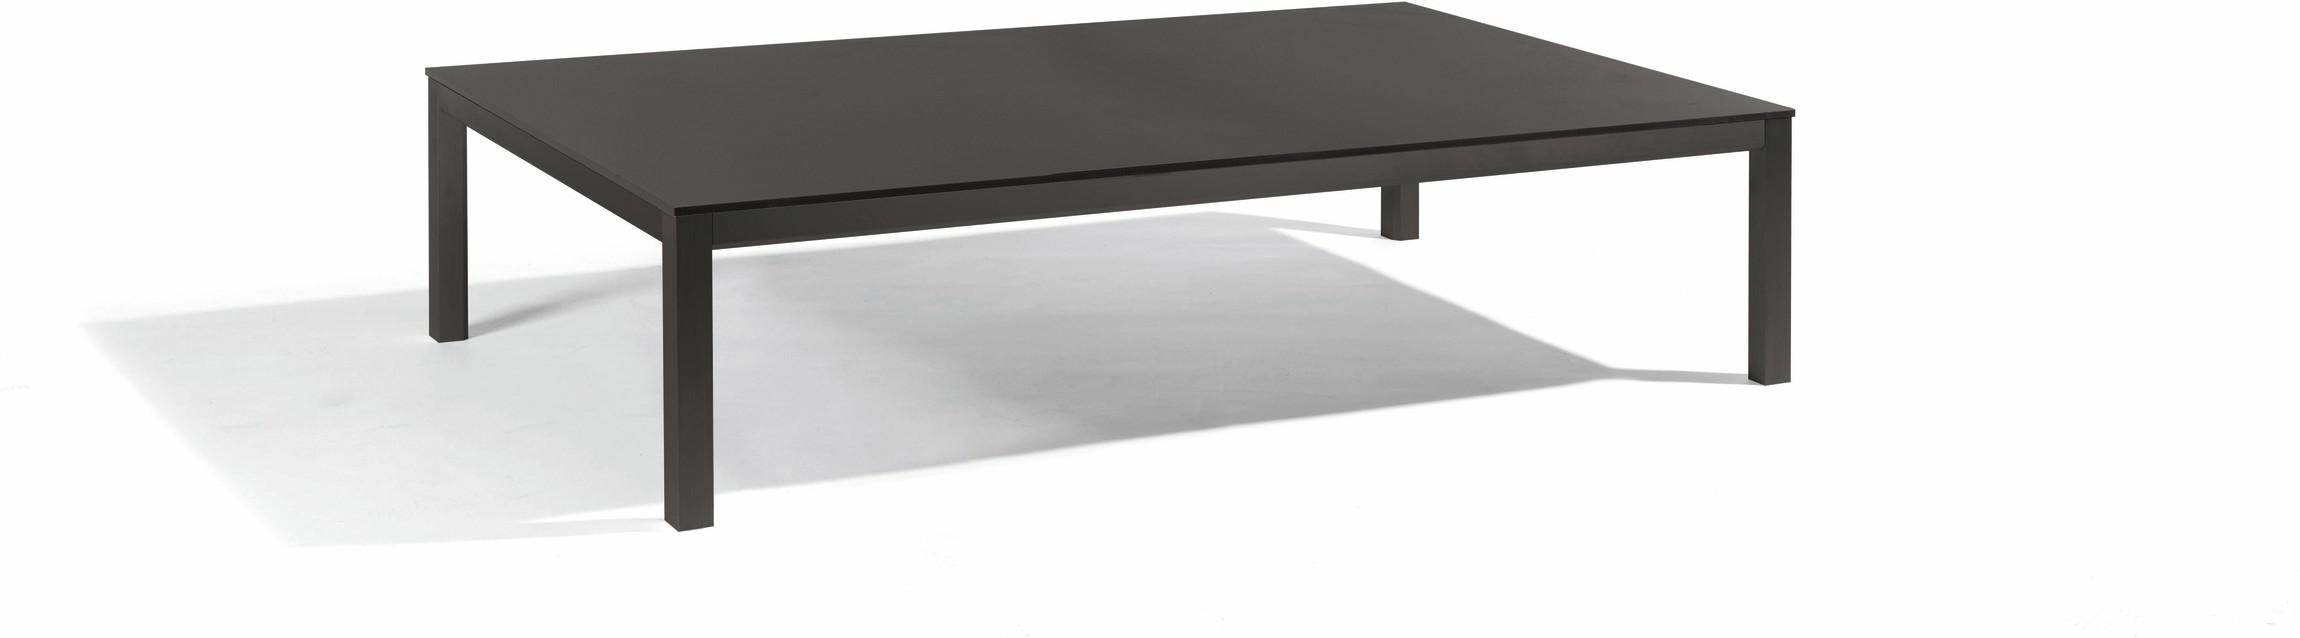 Quarto Coffee table - lava - GLB 150